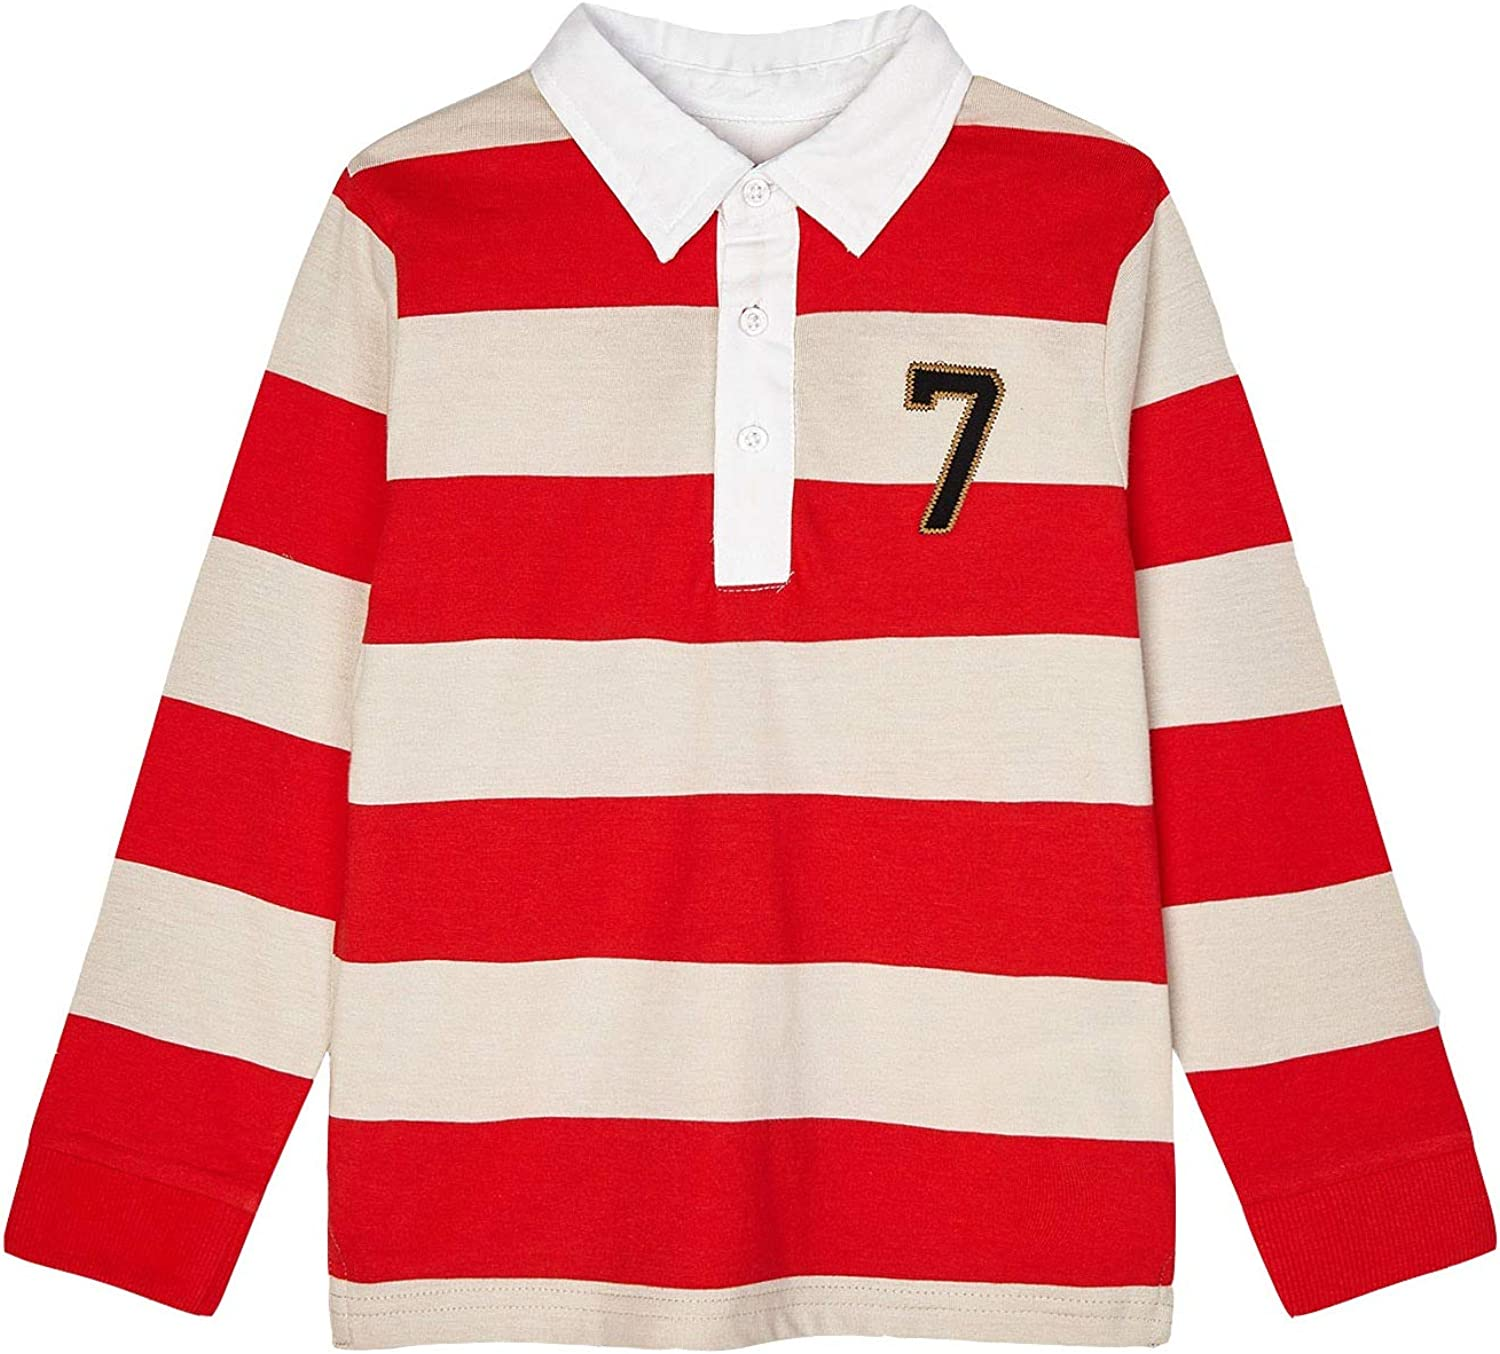 Mayoral - L/s Stripes Polo for Boys - 3114, Cyber red